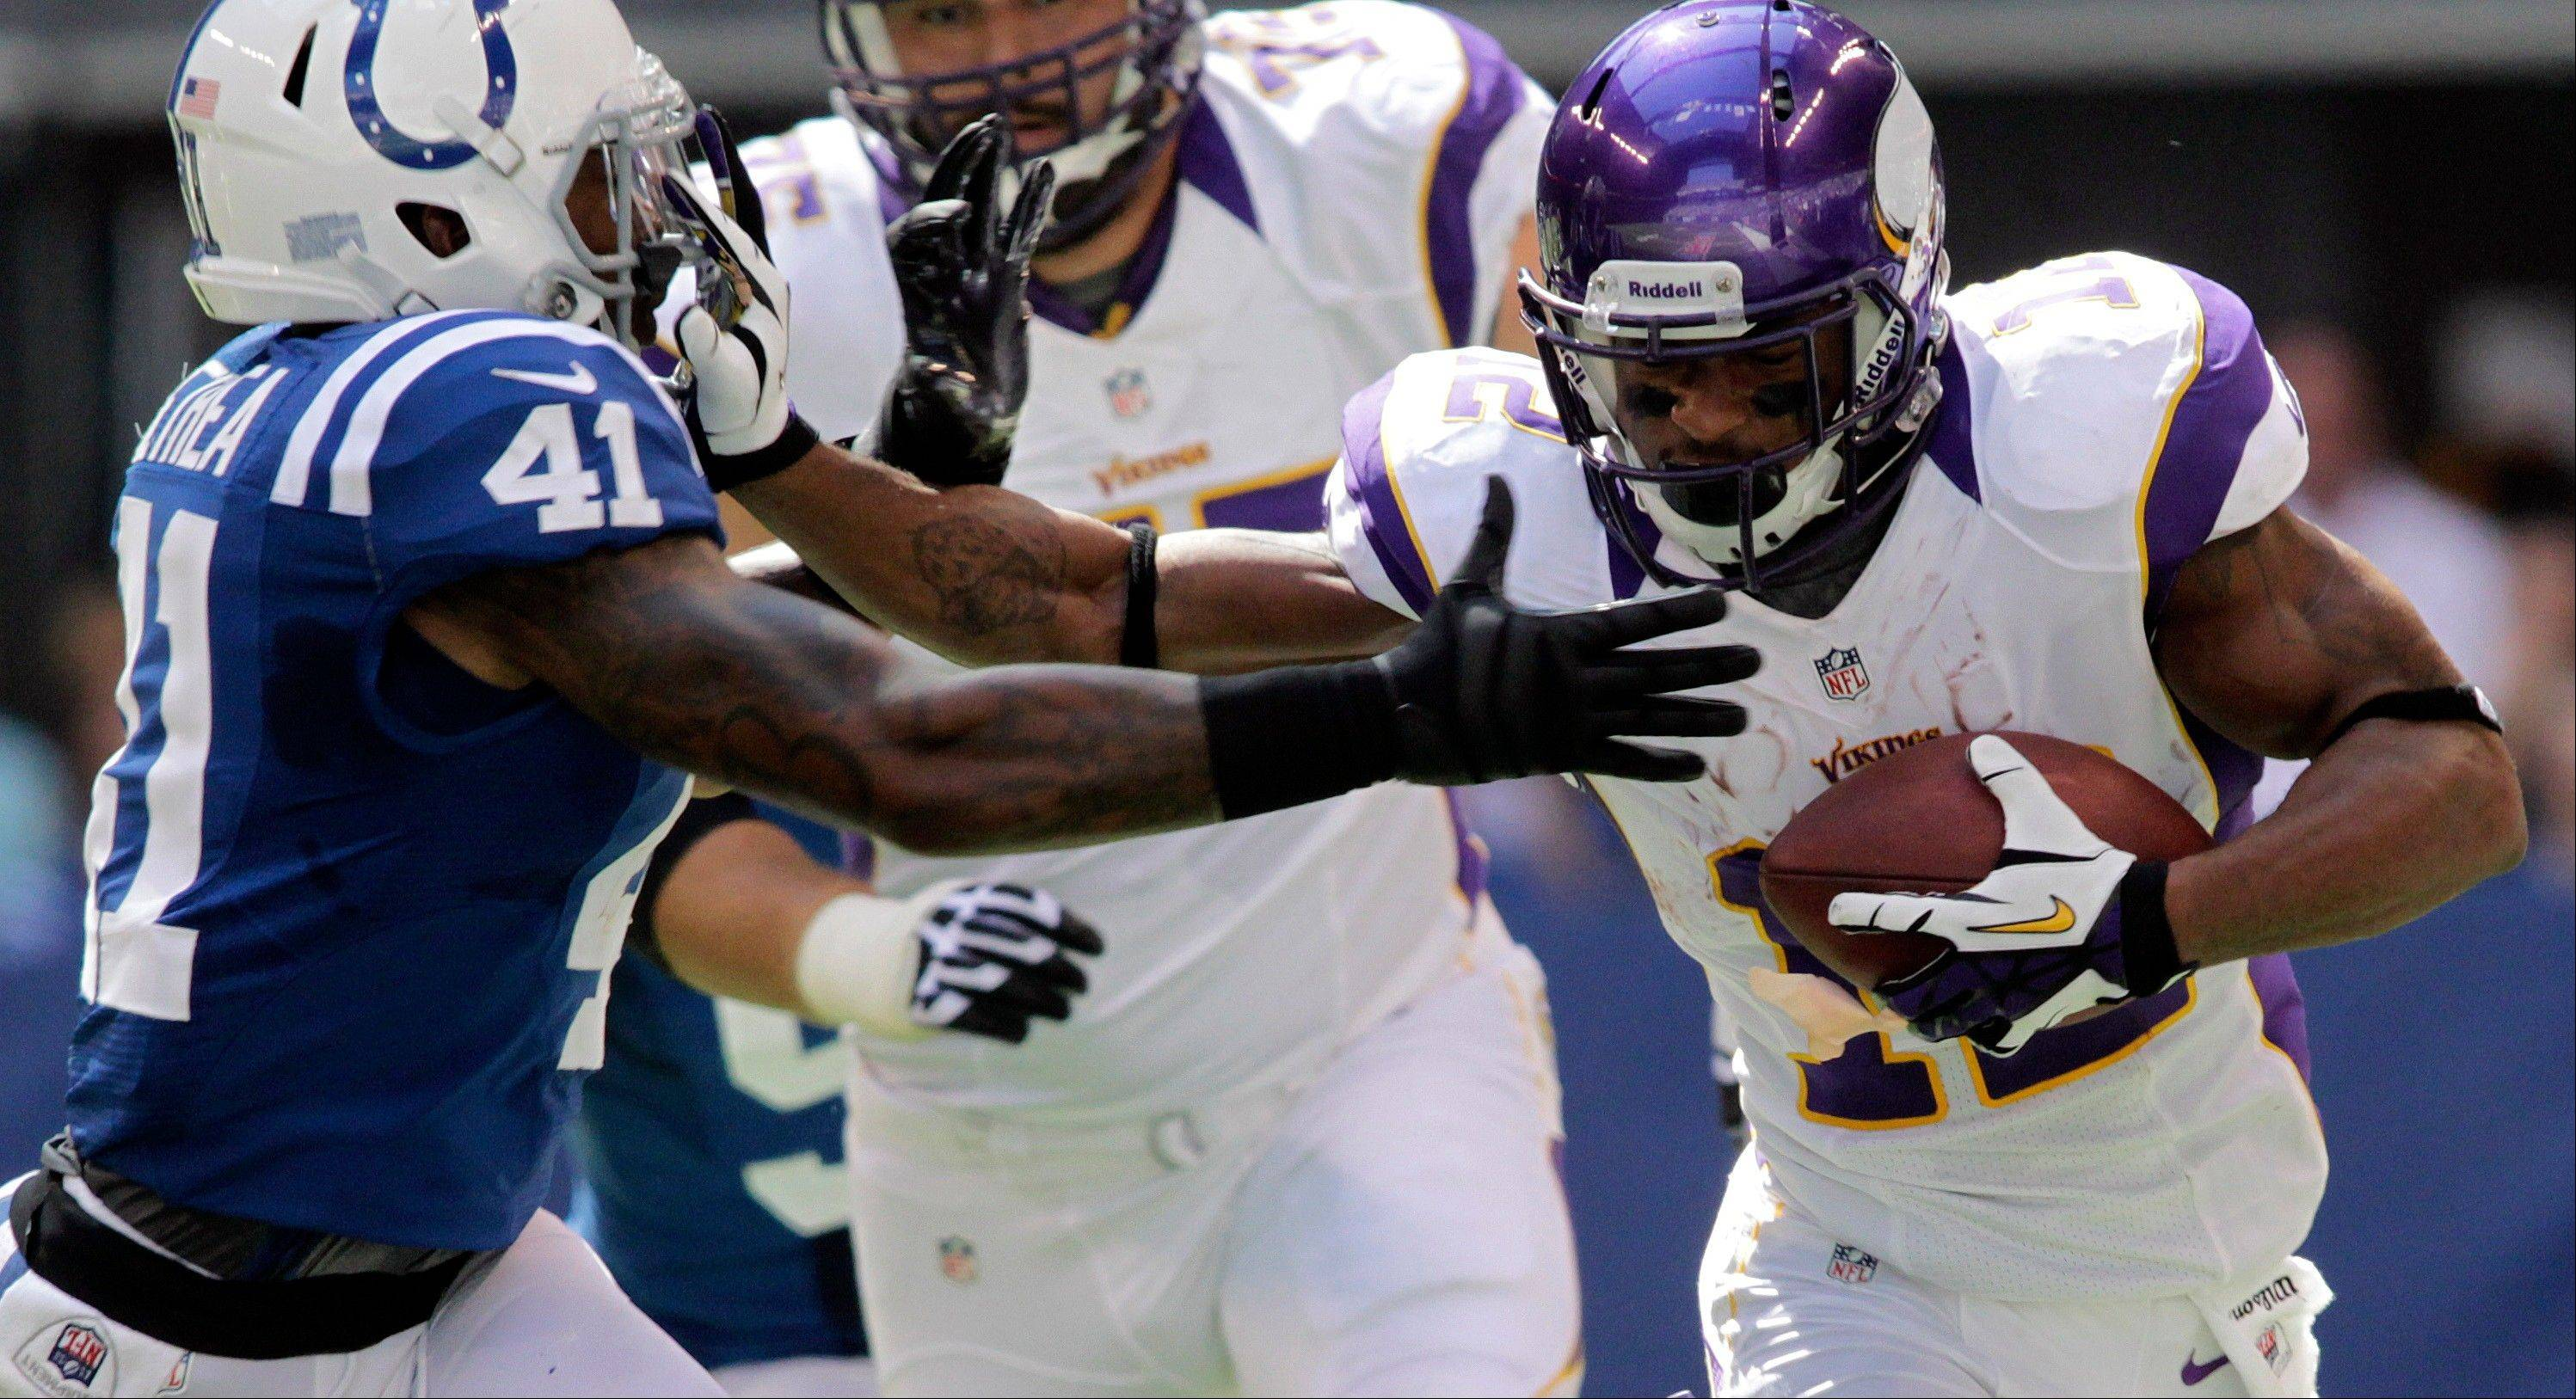 Minnesota Vikings wide receiver Percy Harvin has been ruled out for Sunday's game against the Bears.